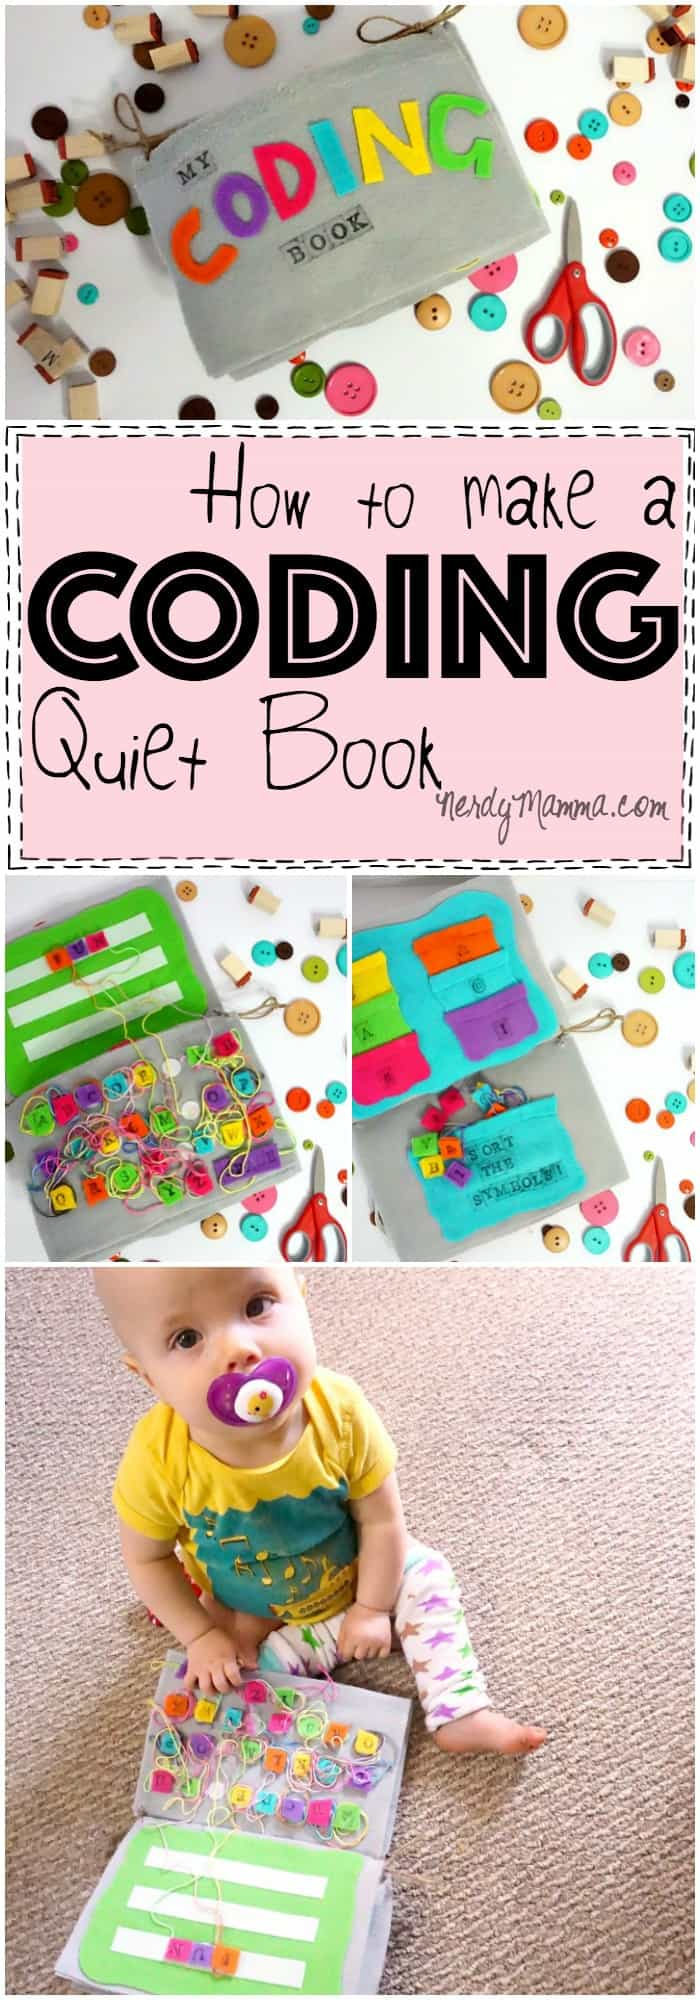 This easy tutorial for making a coding quiet book is so cute! Definitely need one for my little nerd! LOL!